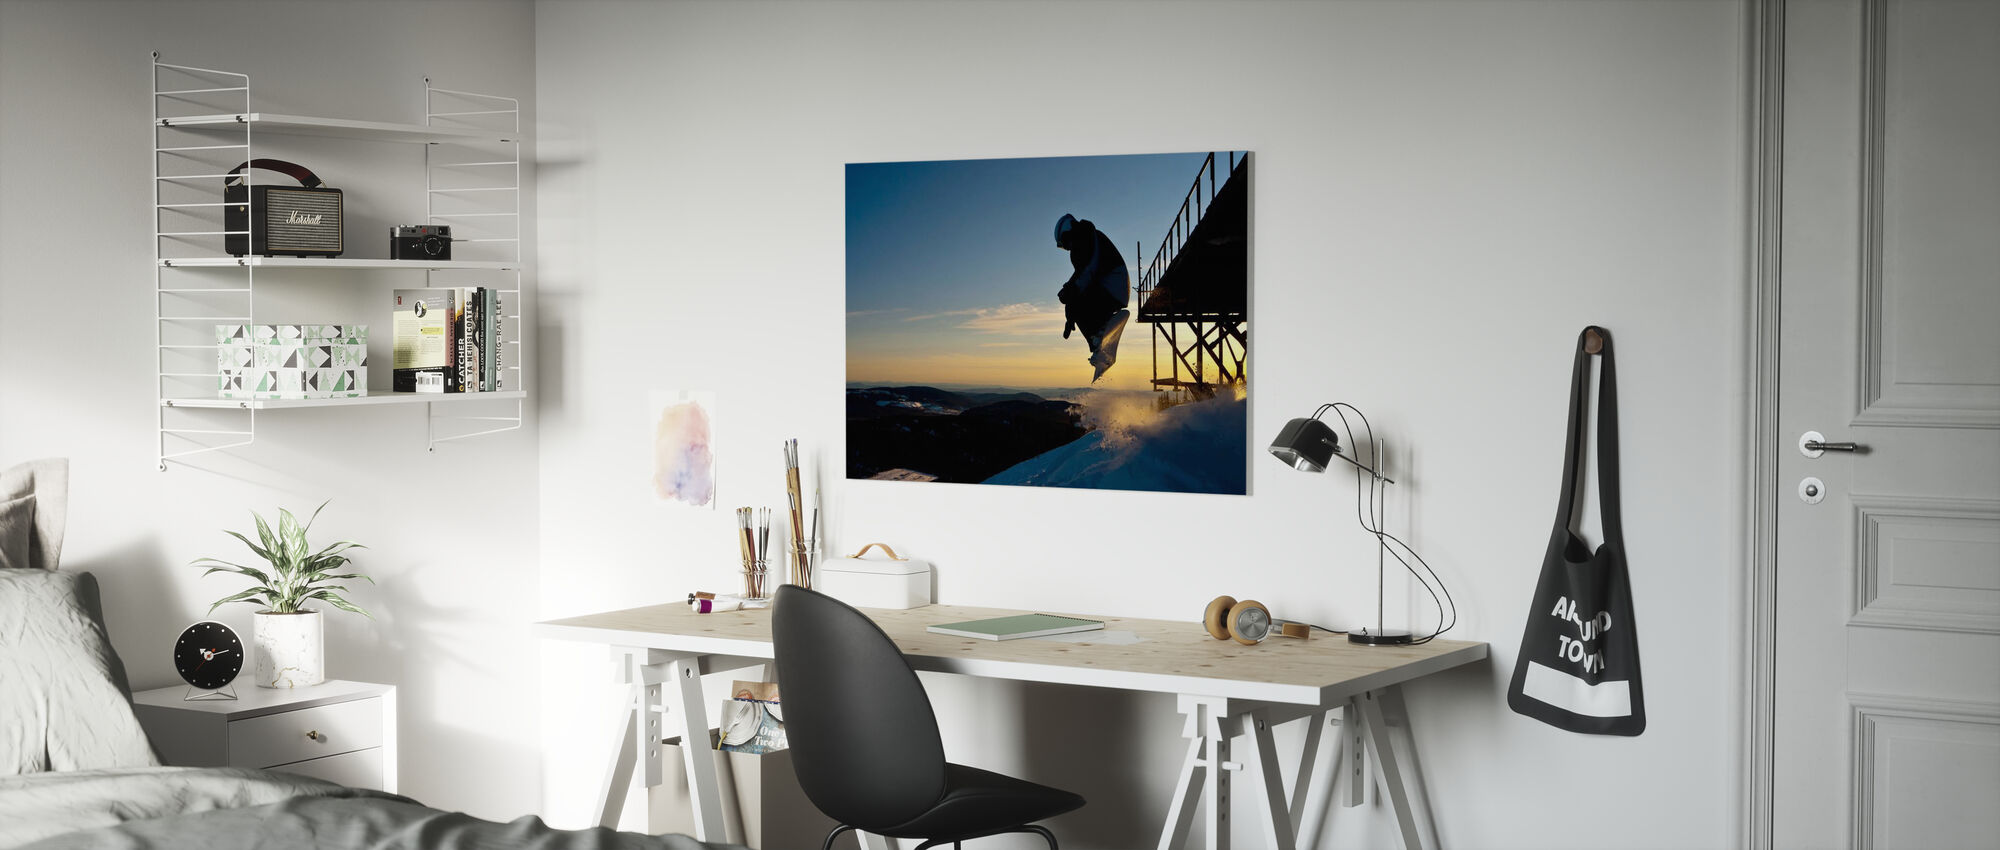 Snowboarder Jump from a Bridge - Canvas print - Kids Room